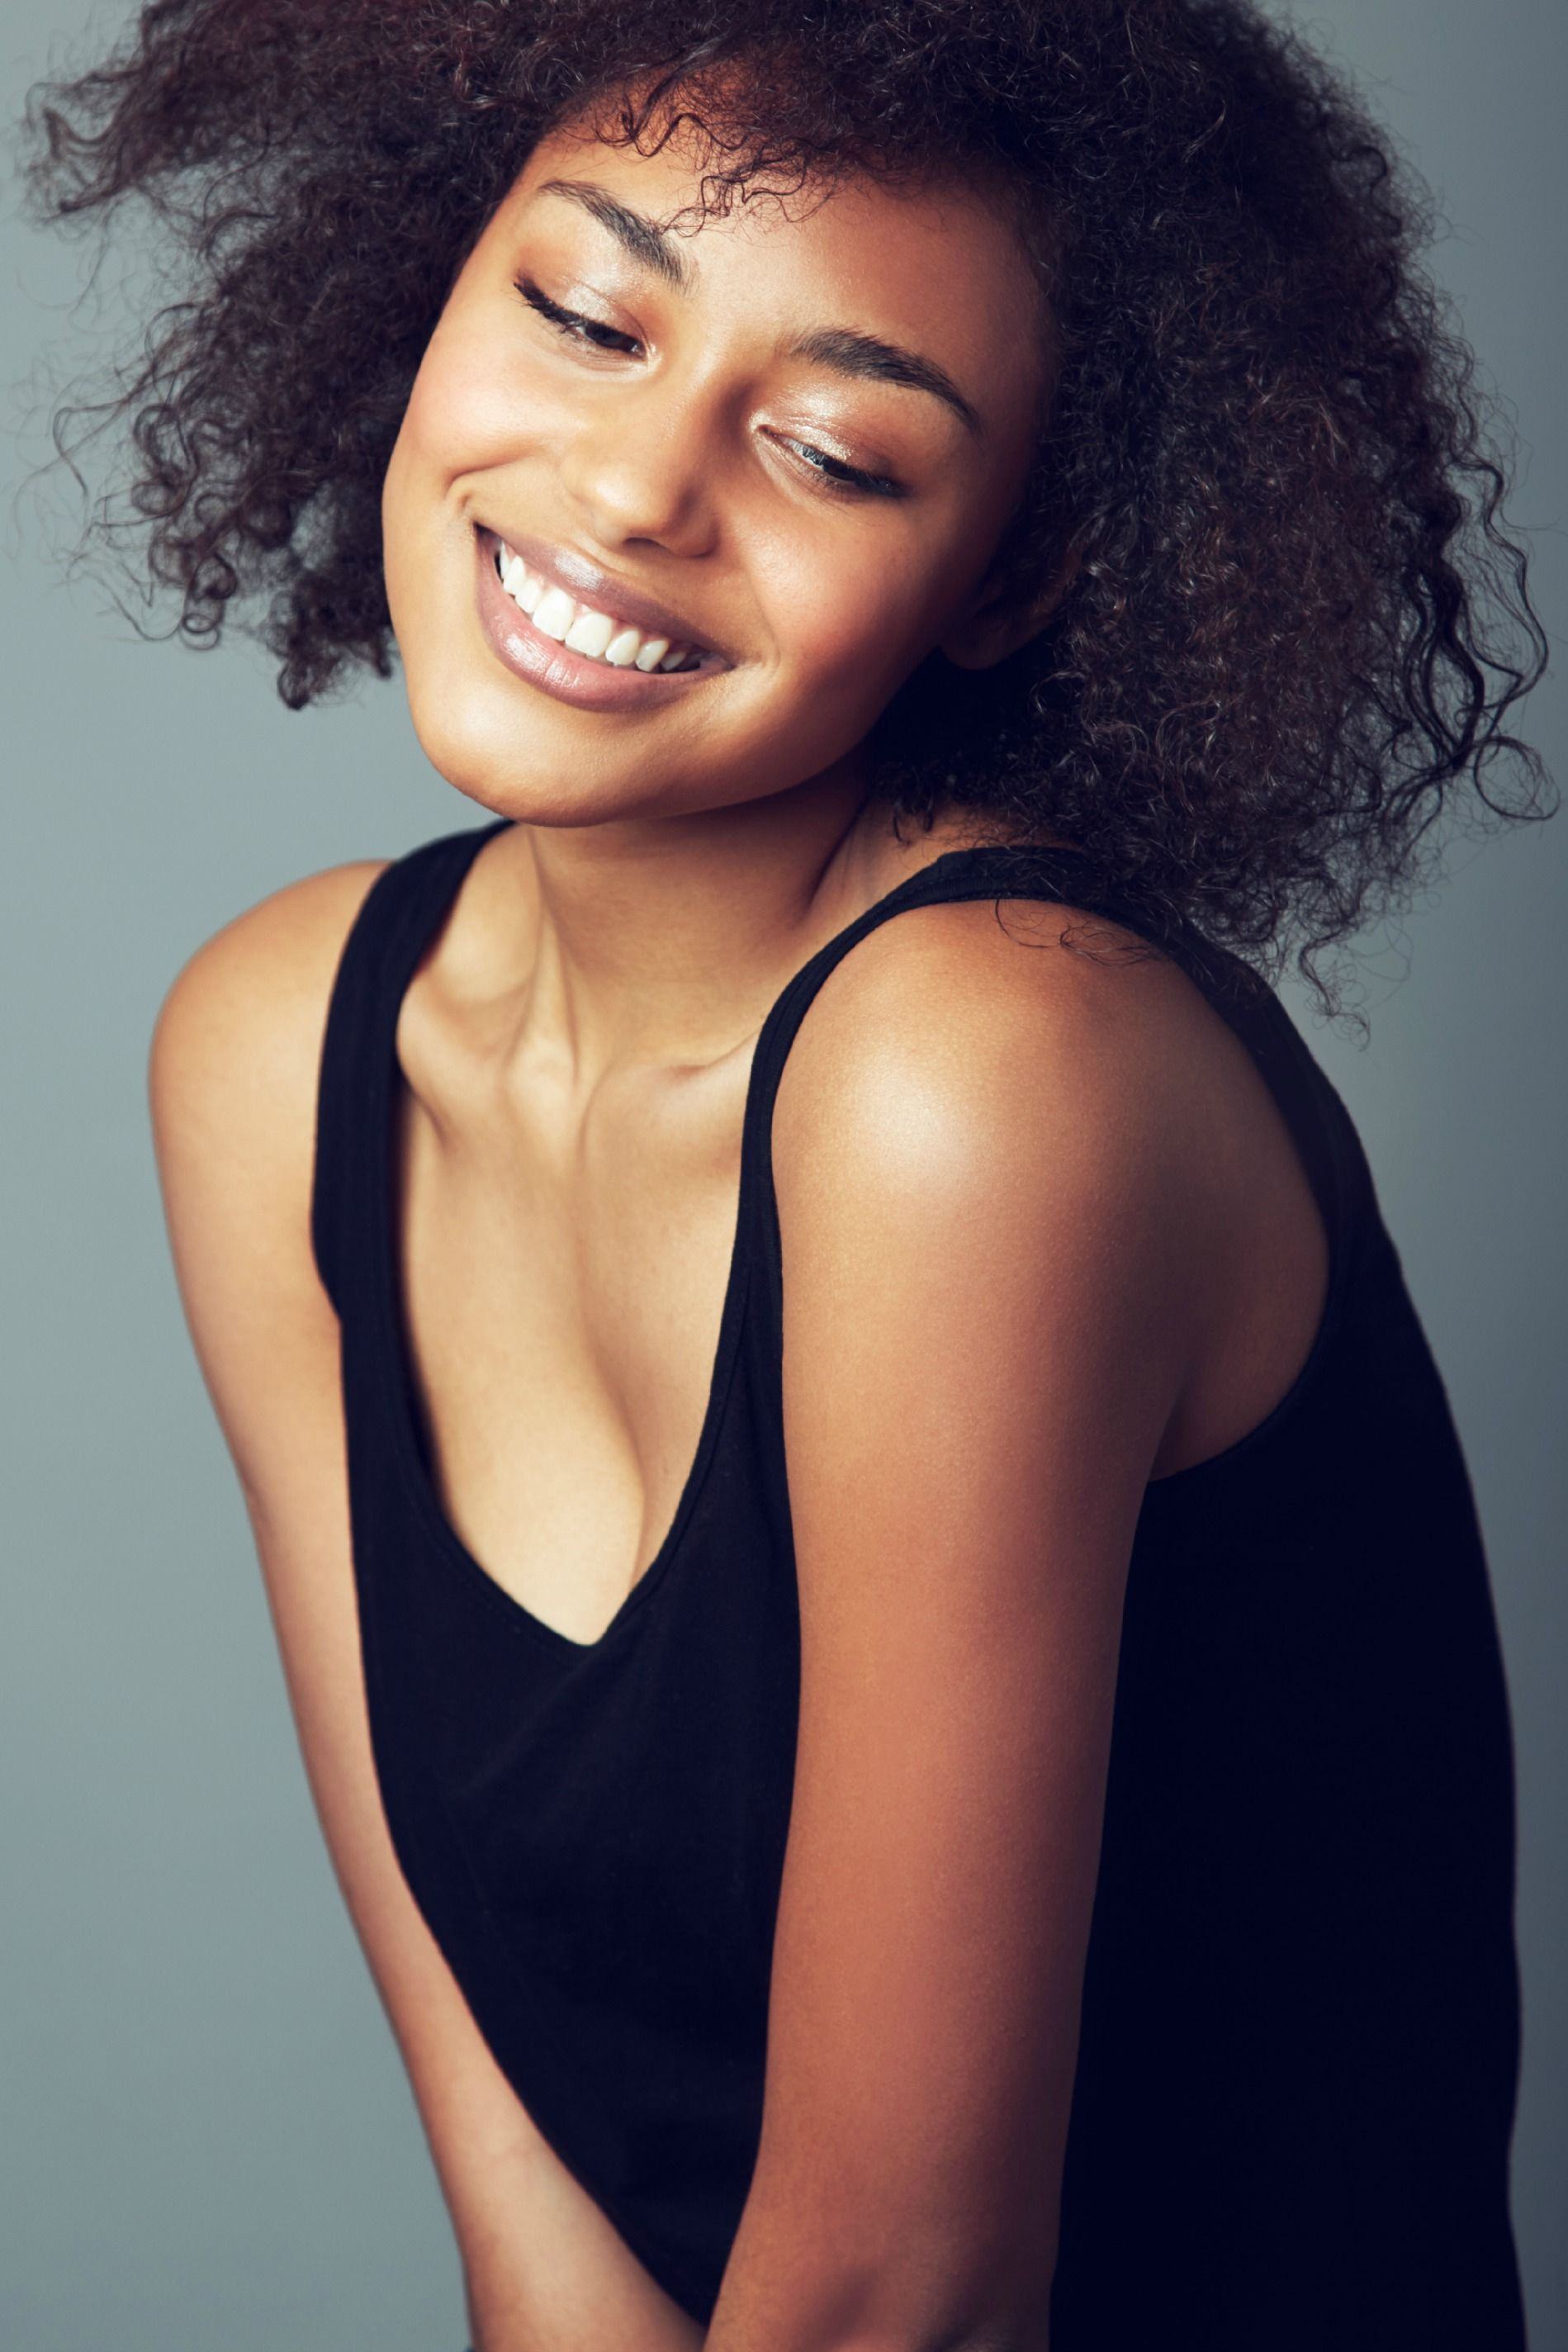 7 Tips to Get Glowing Skin, According to Skin Care Experts